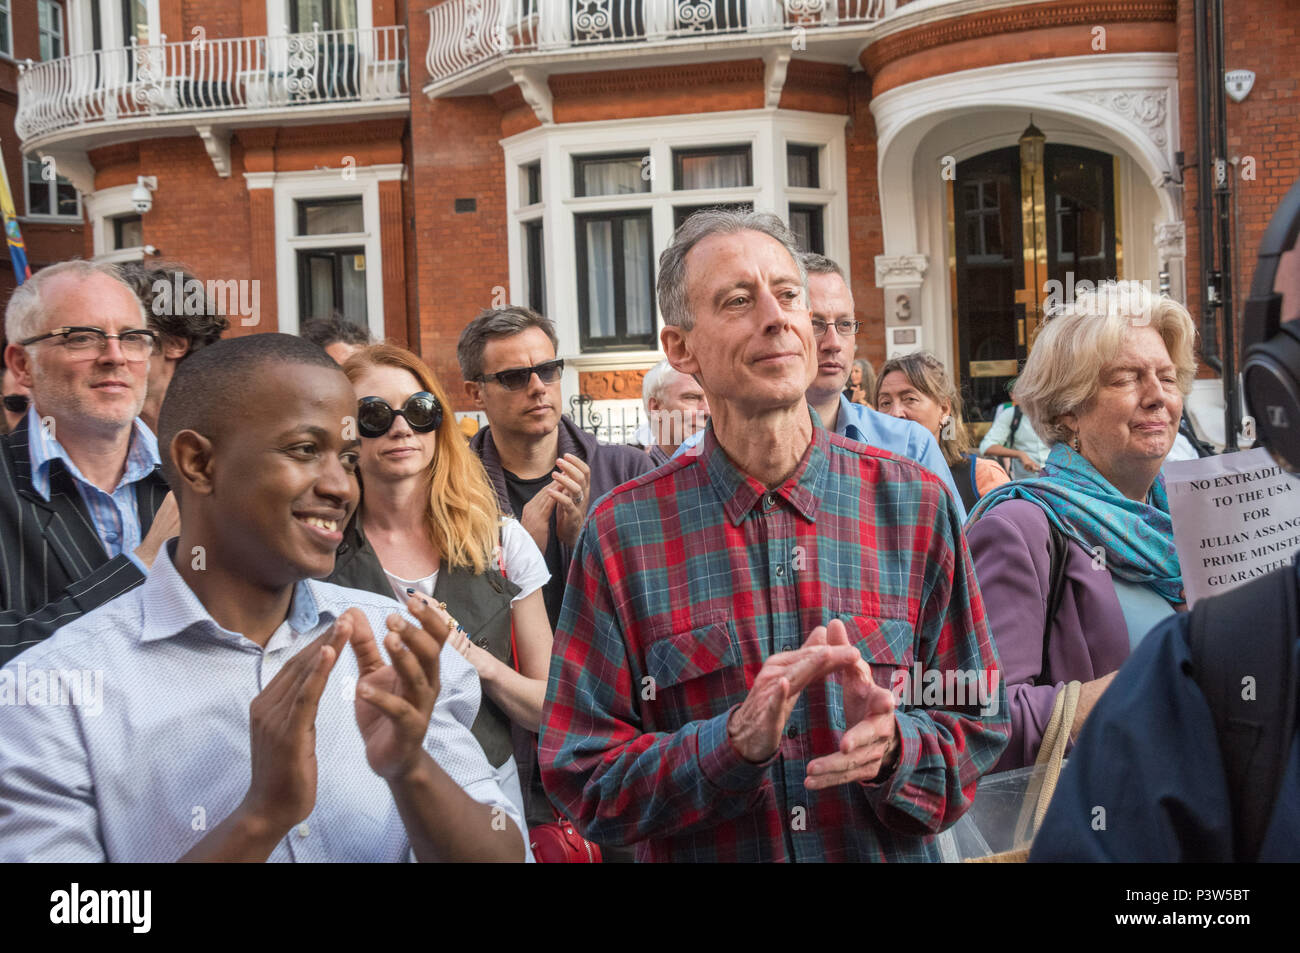 London, UK. 19th June 2018. Peter Tatchell ended his speech at the rally outside the Ecuadorian Embassy in London by leading a long round of applause for Julian Assange. The rally called for him to be allowed safe passage to the place of his choice to mark six years since he was given asylum there. They called for the UK authorities to allow him to leave the embassy and go to the country of his choice without being arrested. Credit: Peter Marshall/Alamy Live News - Stock Image